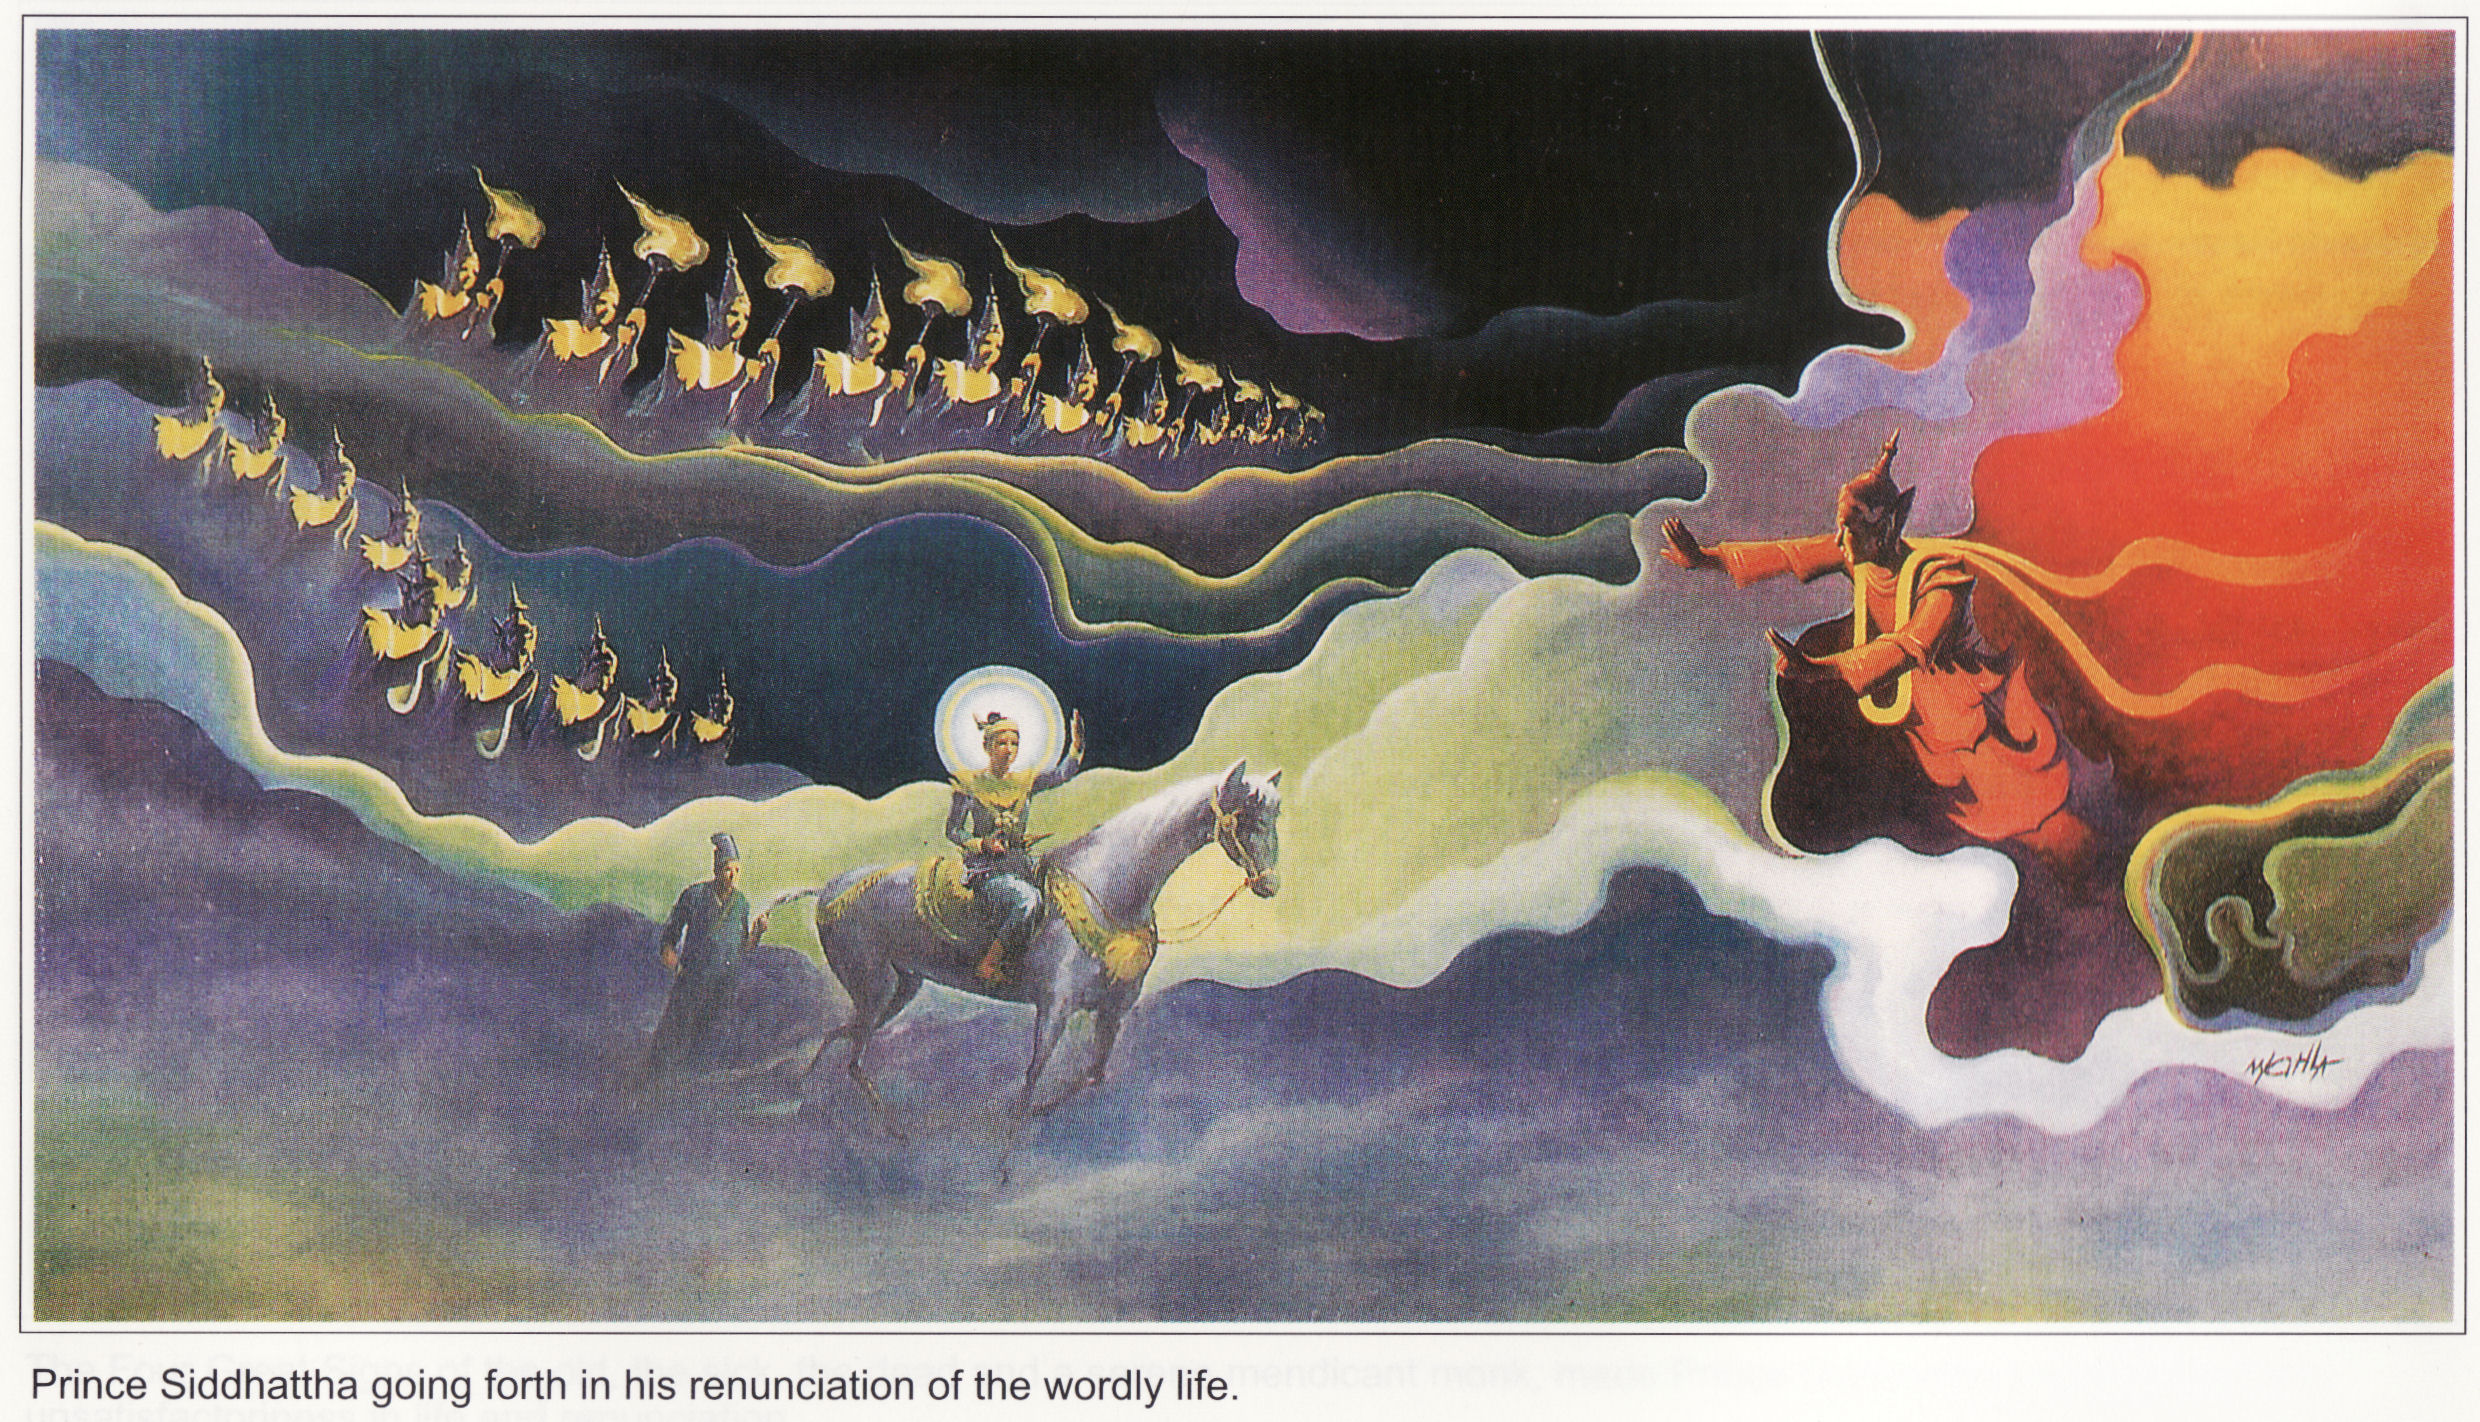 story of mara and buddha Story source: the life of buddha by andre ferdinand herold (1922) mara's defeat the light emanating from the hero's body reached even to those realms where mara, the evil one, reigned supreme.